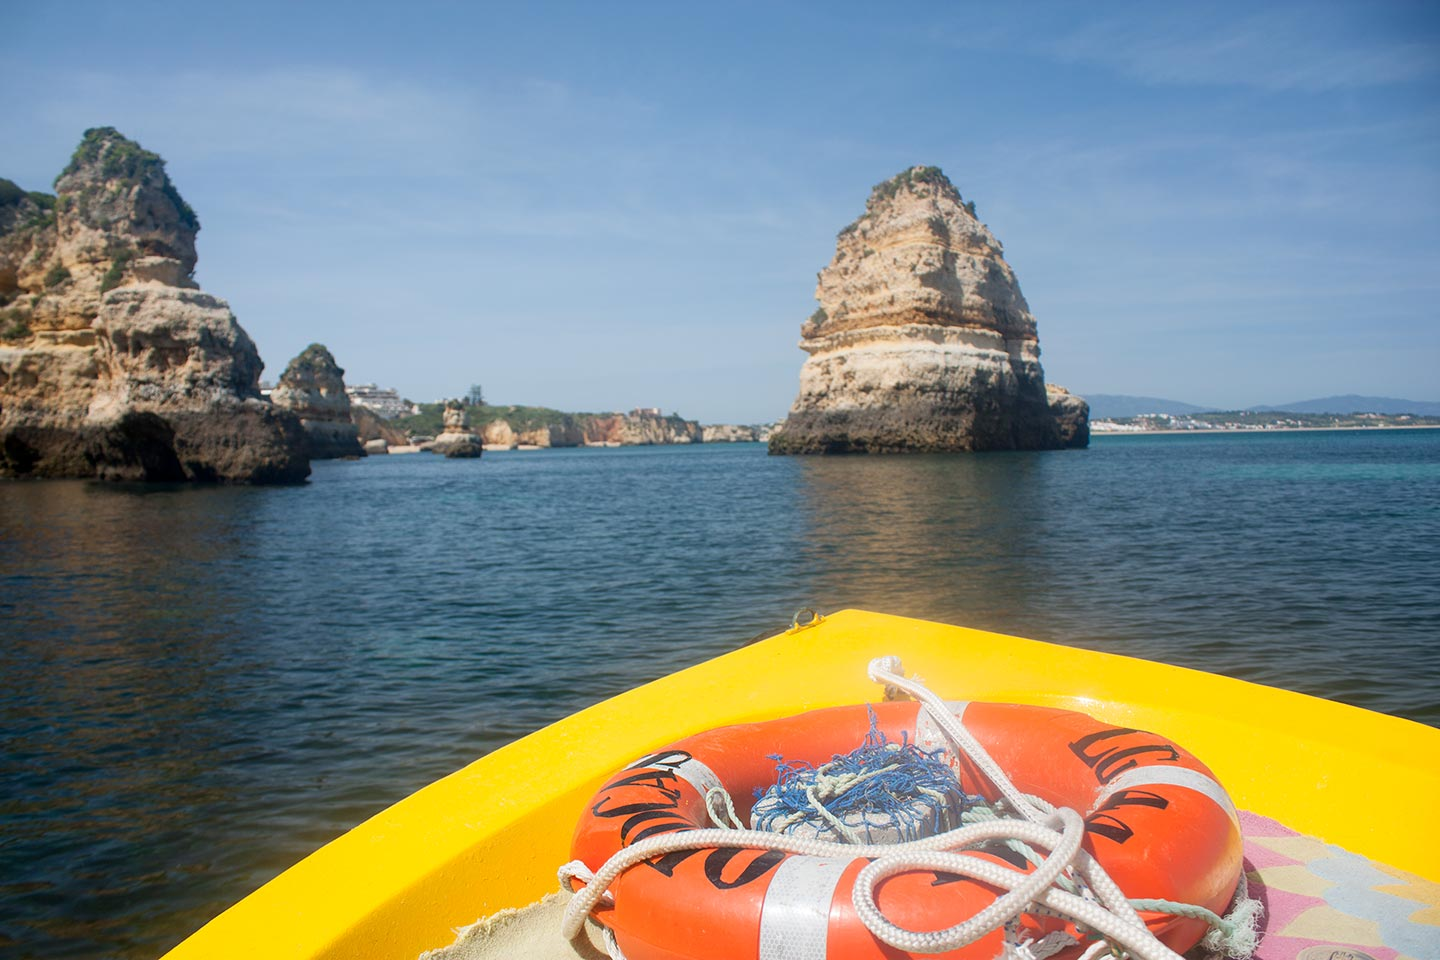 Image of boat trip along the coast of Ponta da Piedade, Lagos